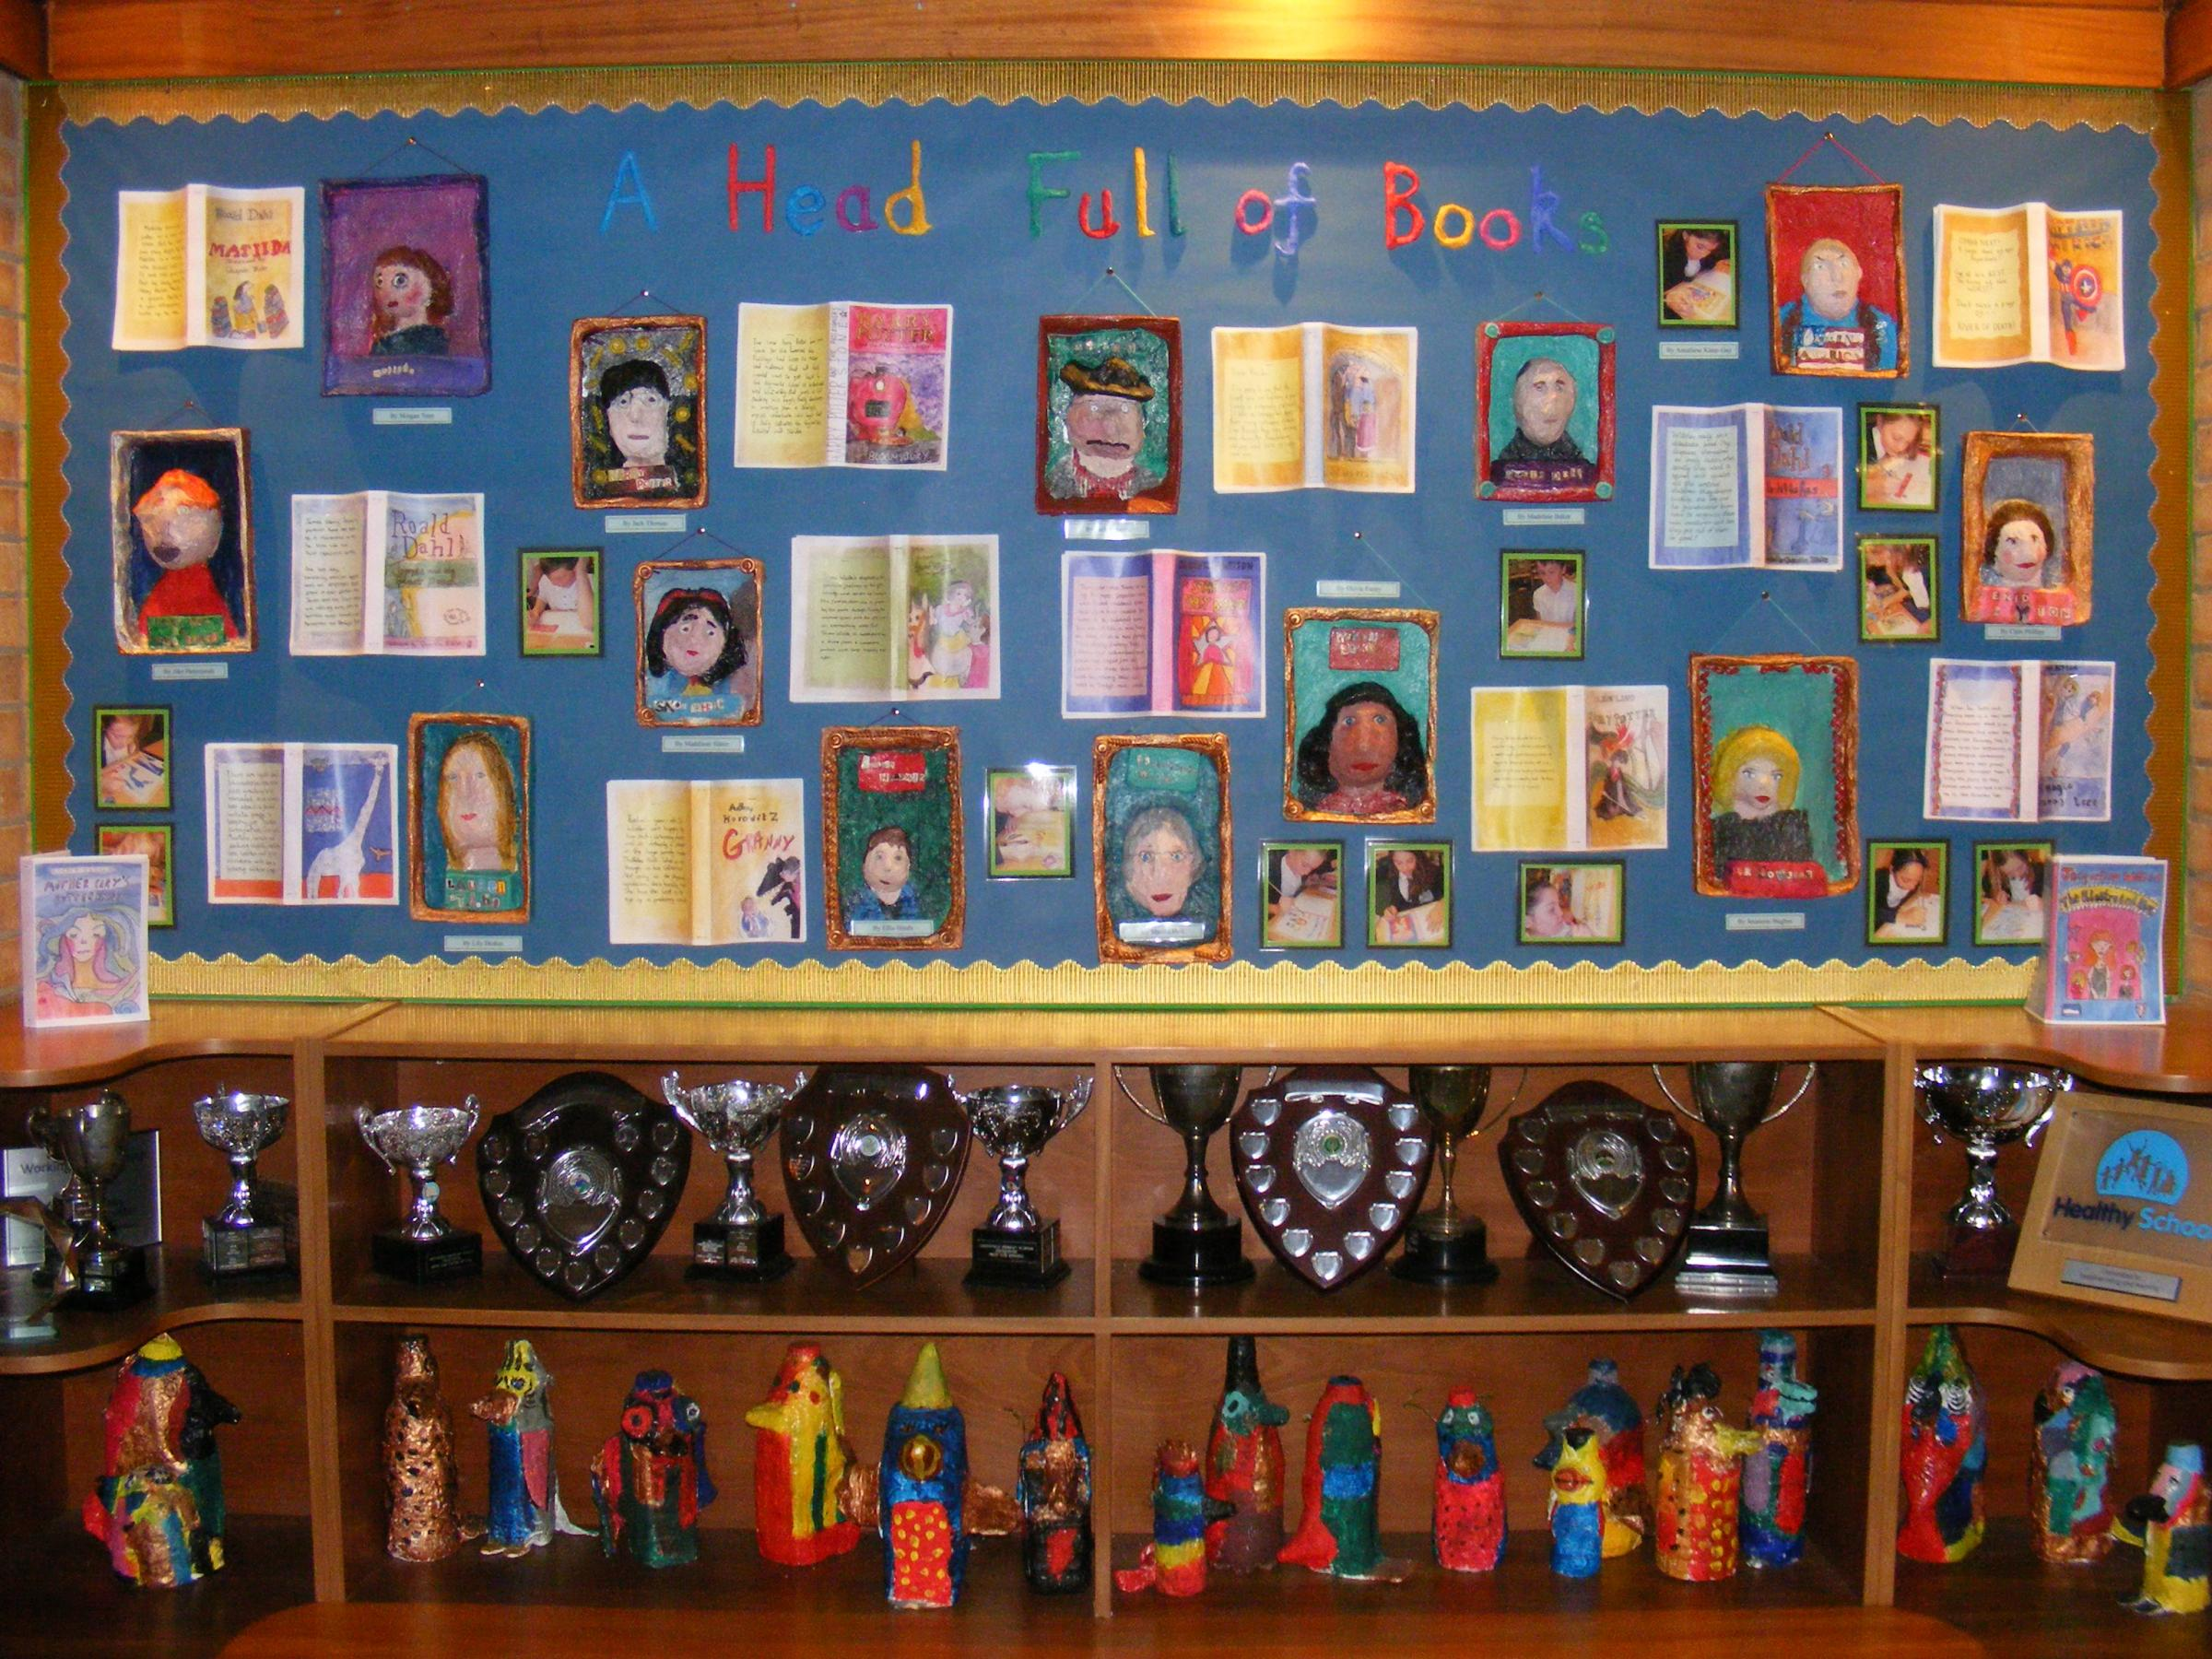 Greenfield's 3D portrait gallery of famous authors and book characters